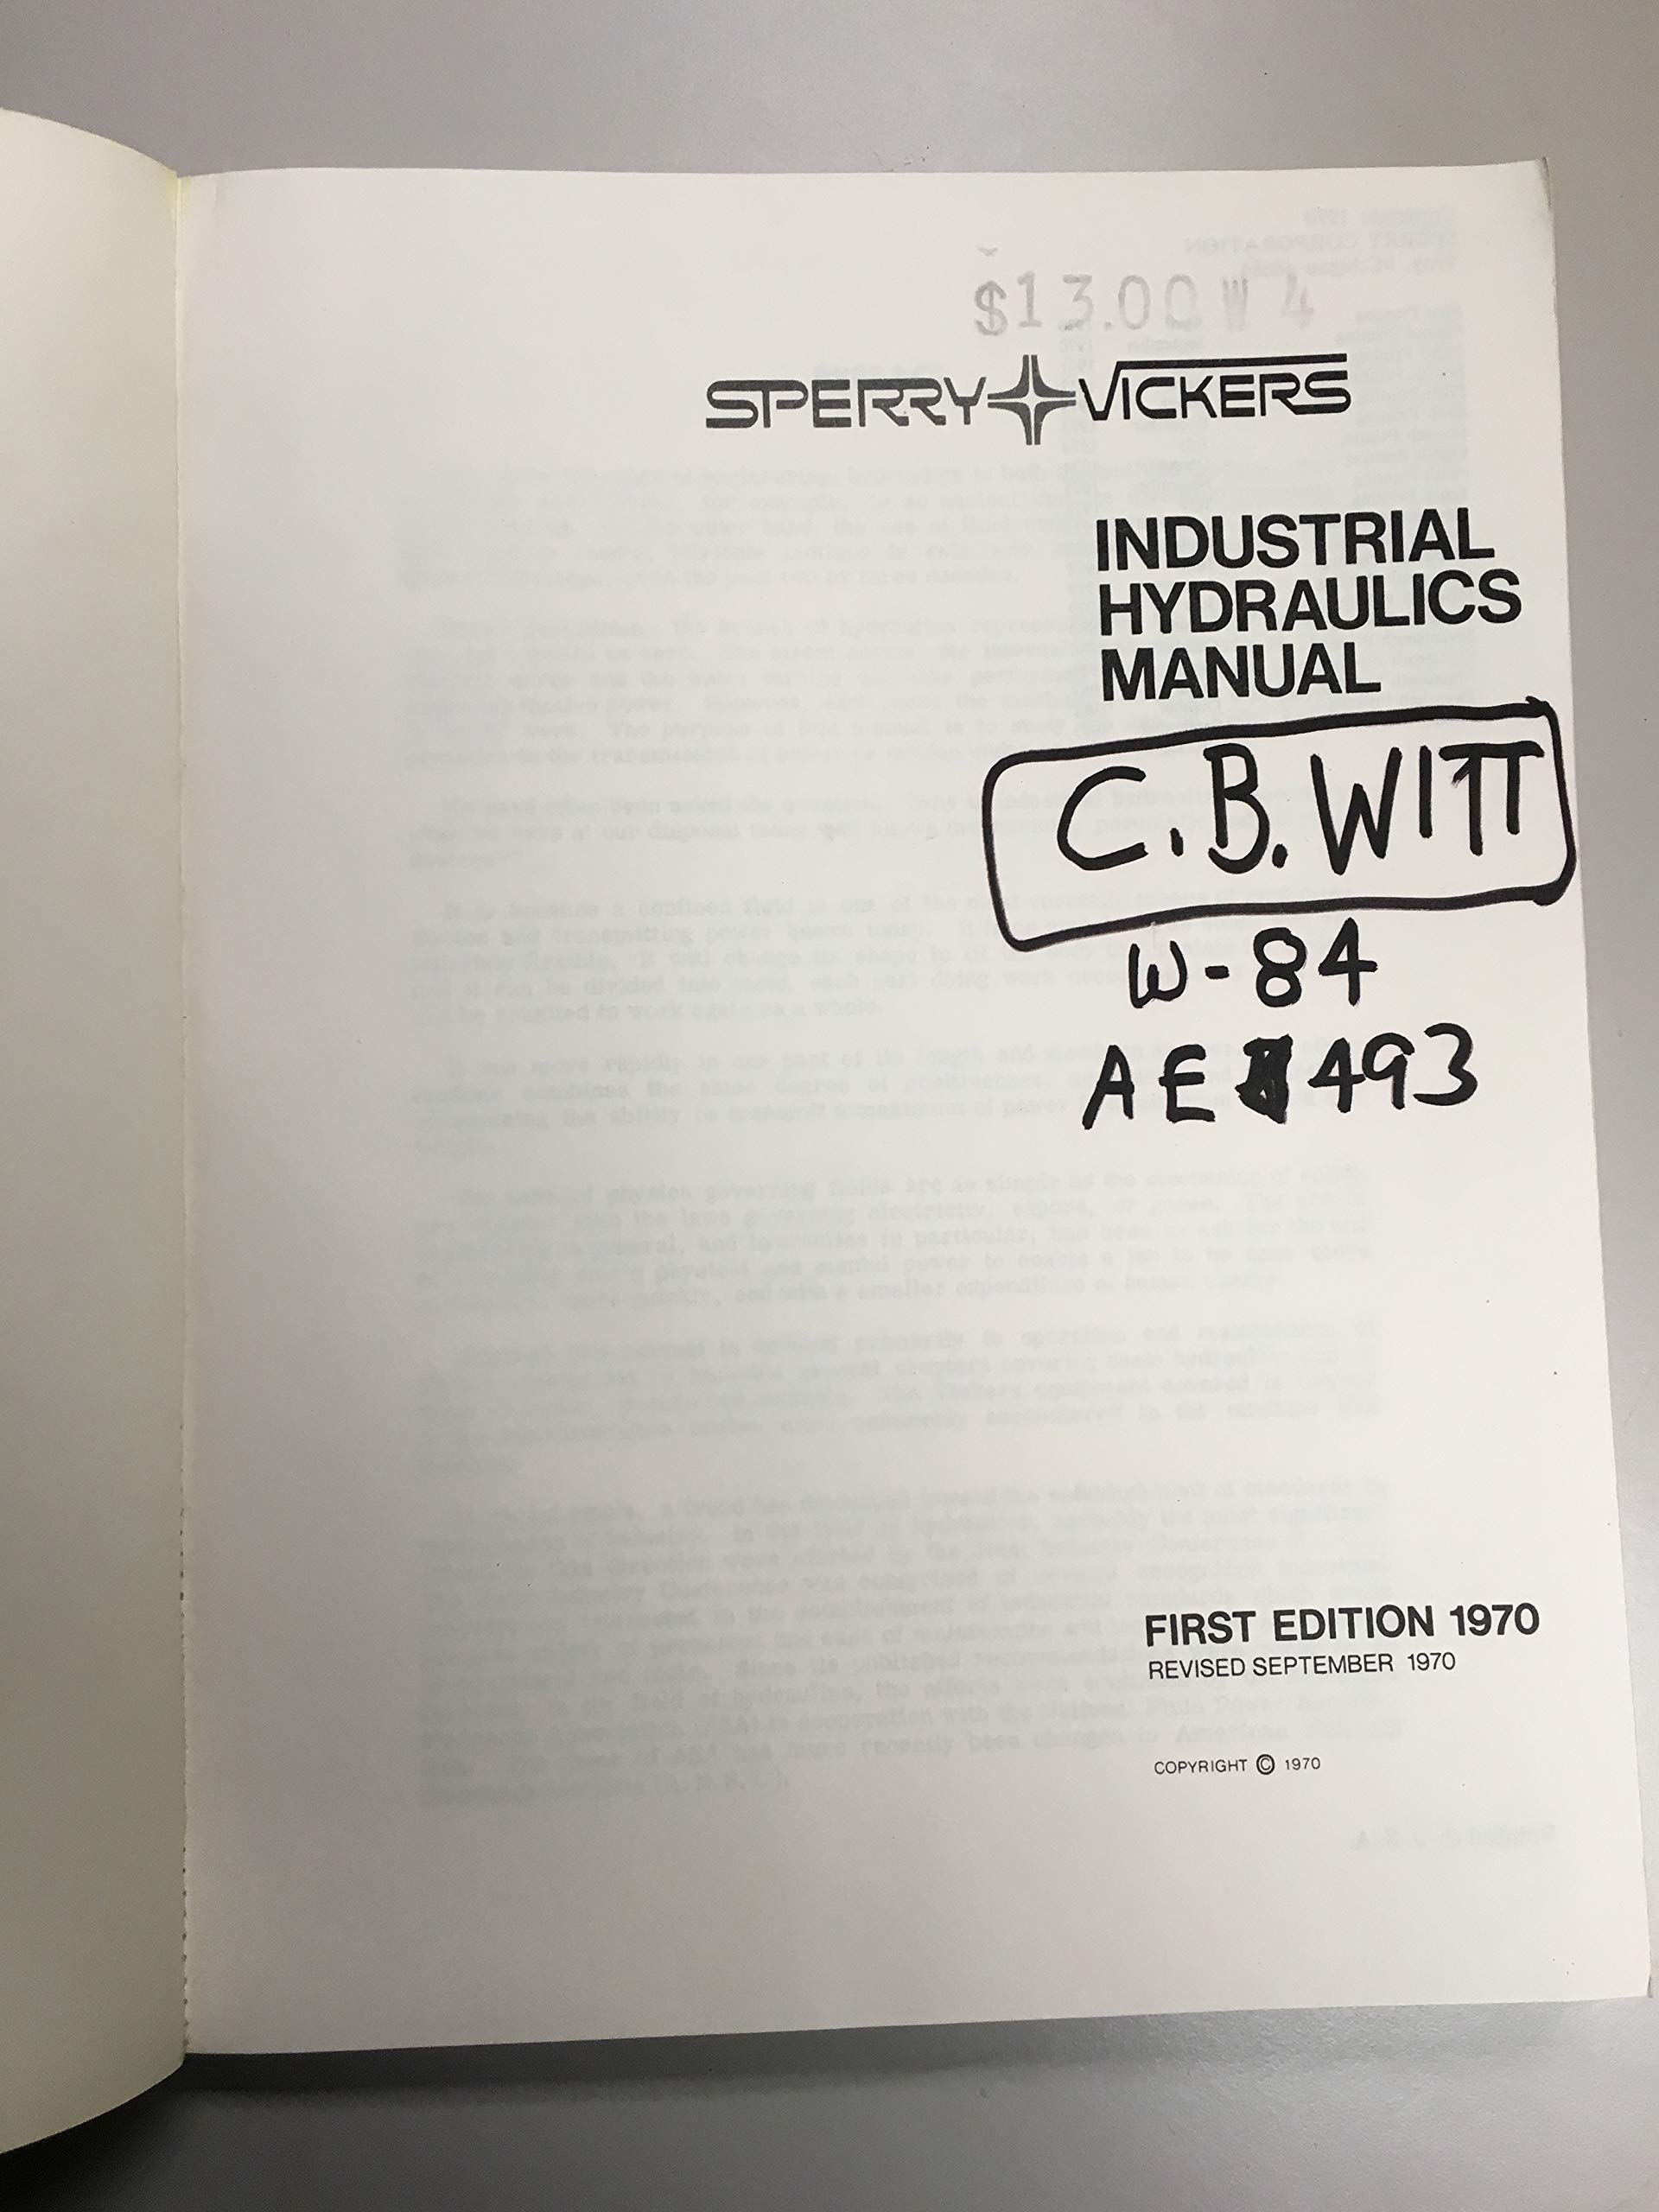 Sperry Vickers Industrial Hydraulics Manual.: Sperry Rand Corporation:  Amazon.com: Books